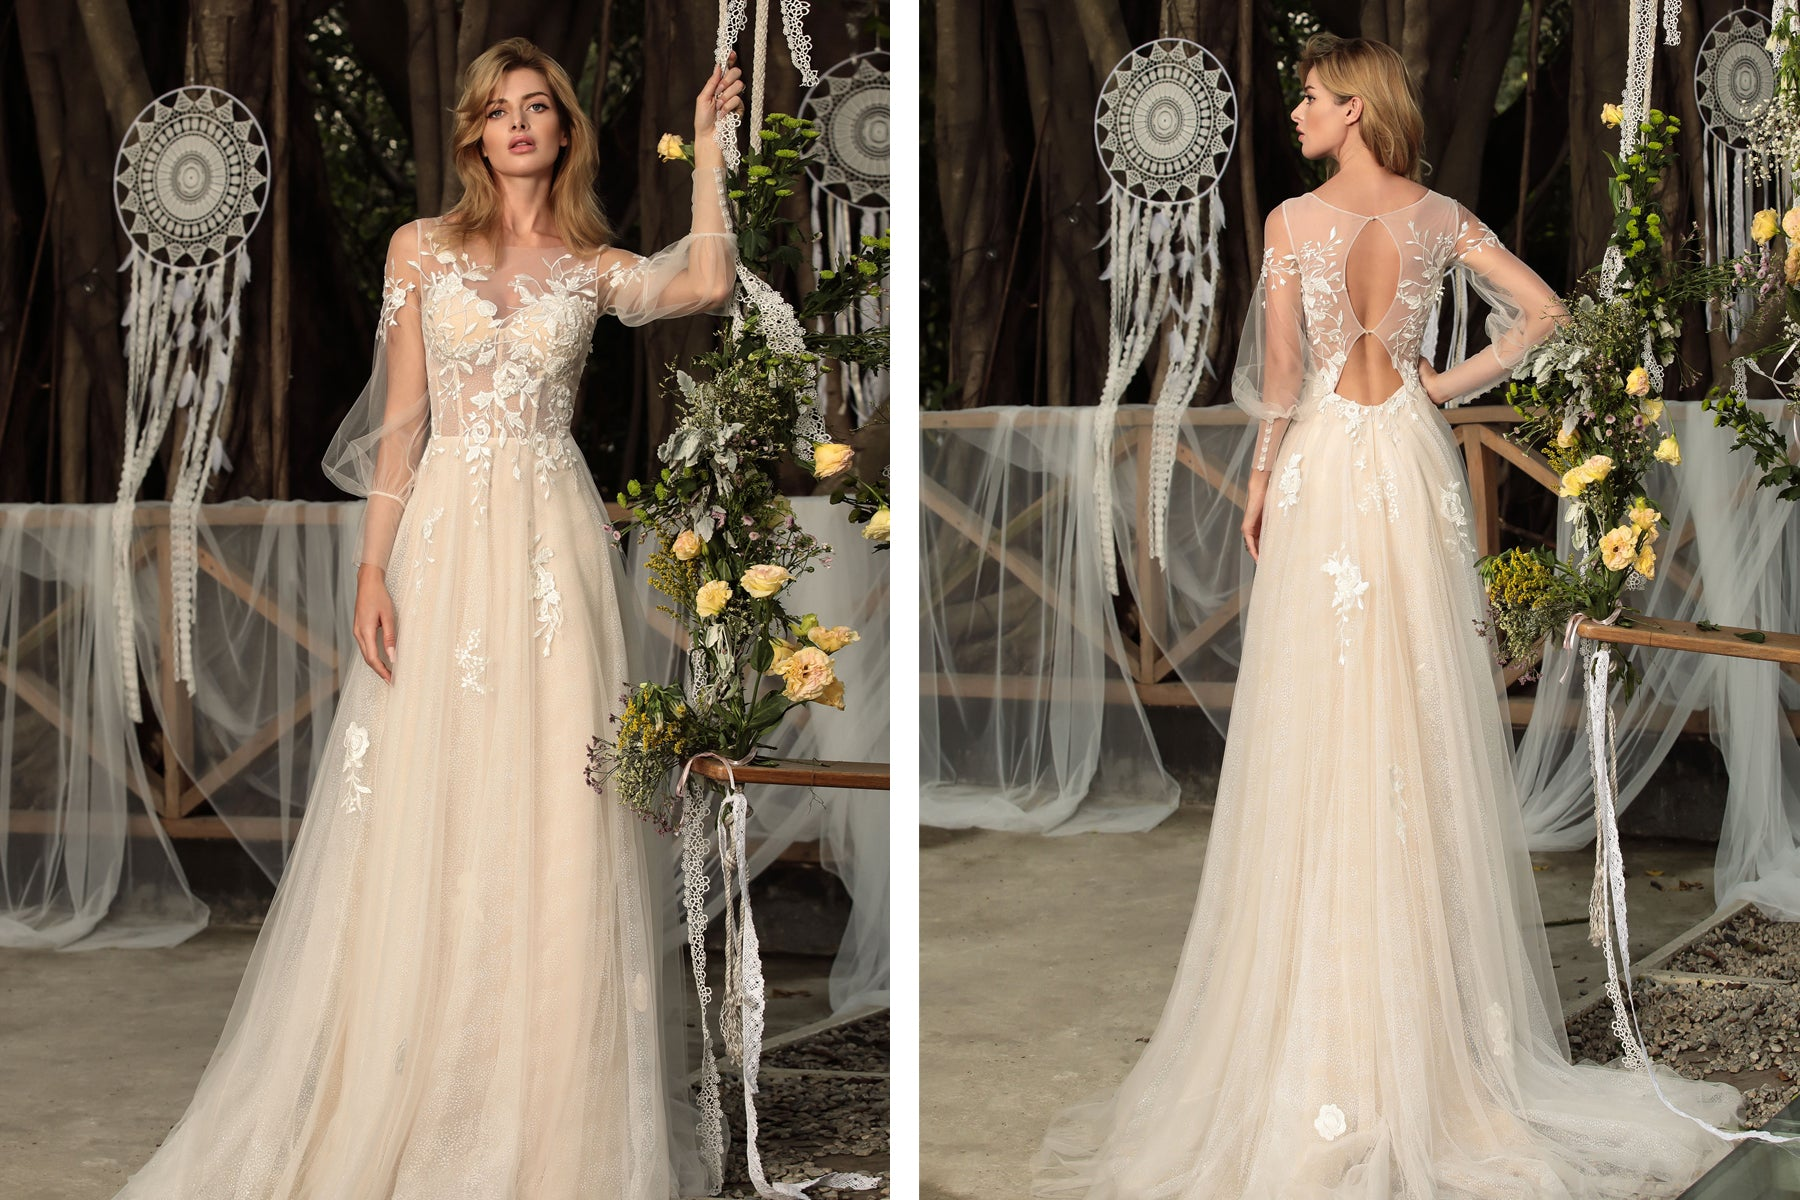 Eternal-bridal-wedding-dress-chic-nostalgia-mellow-collection-tessa